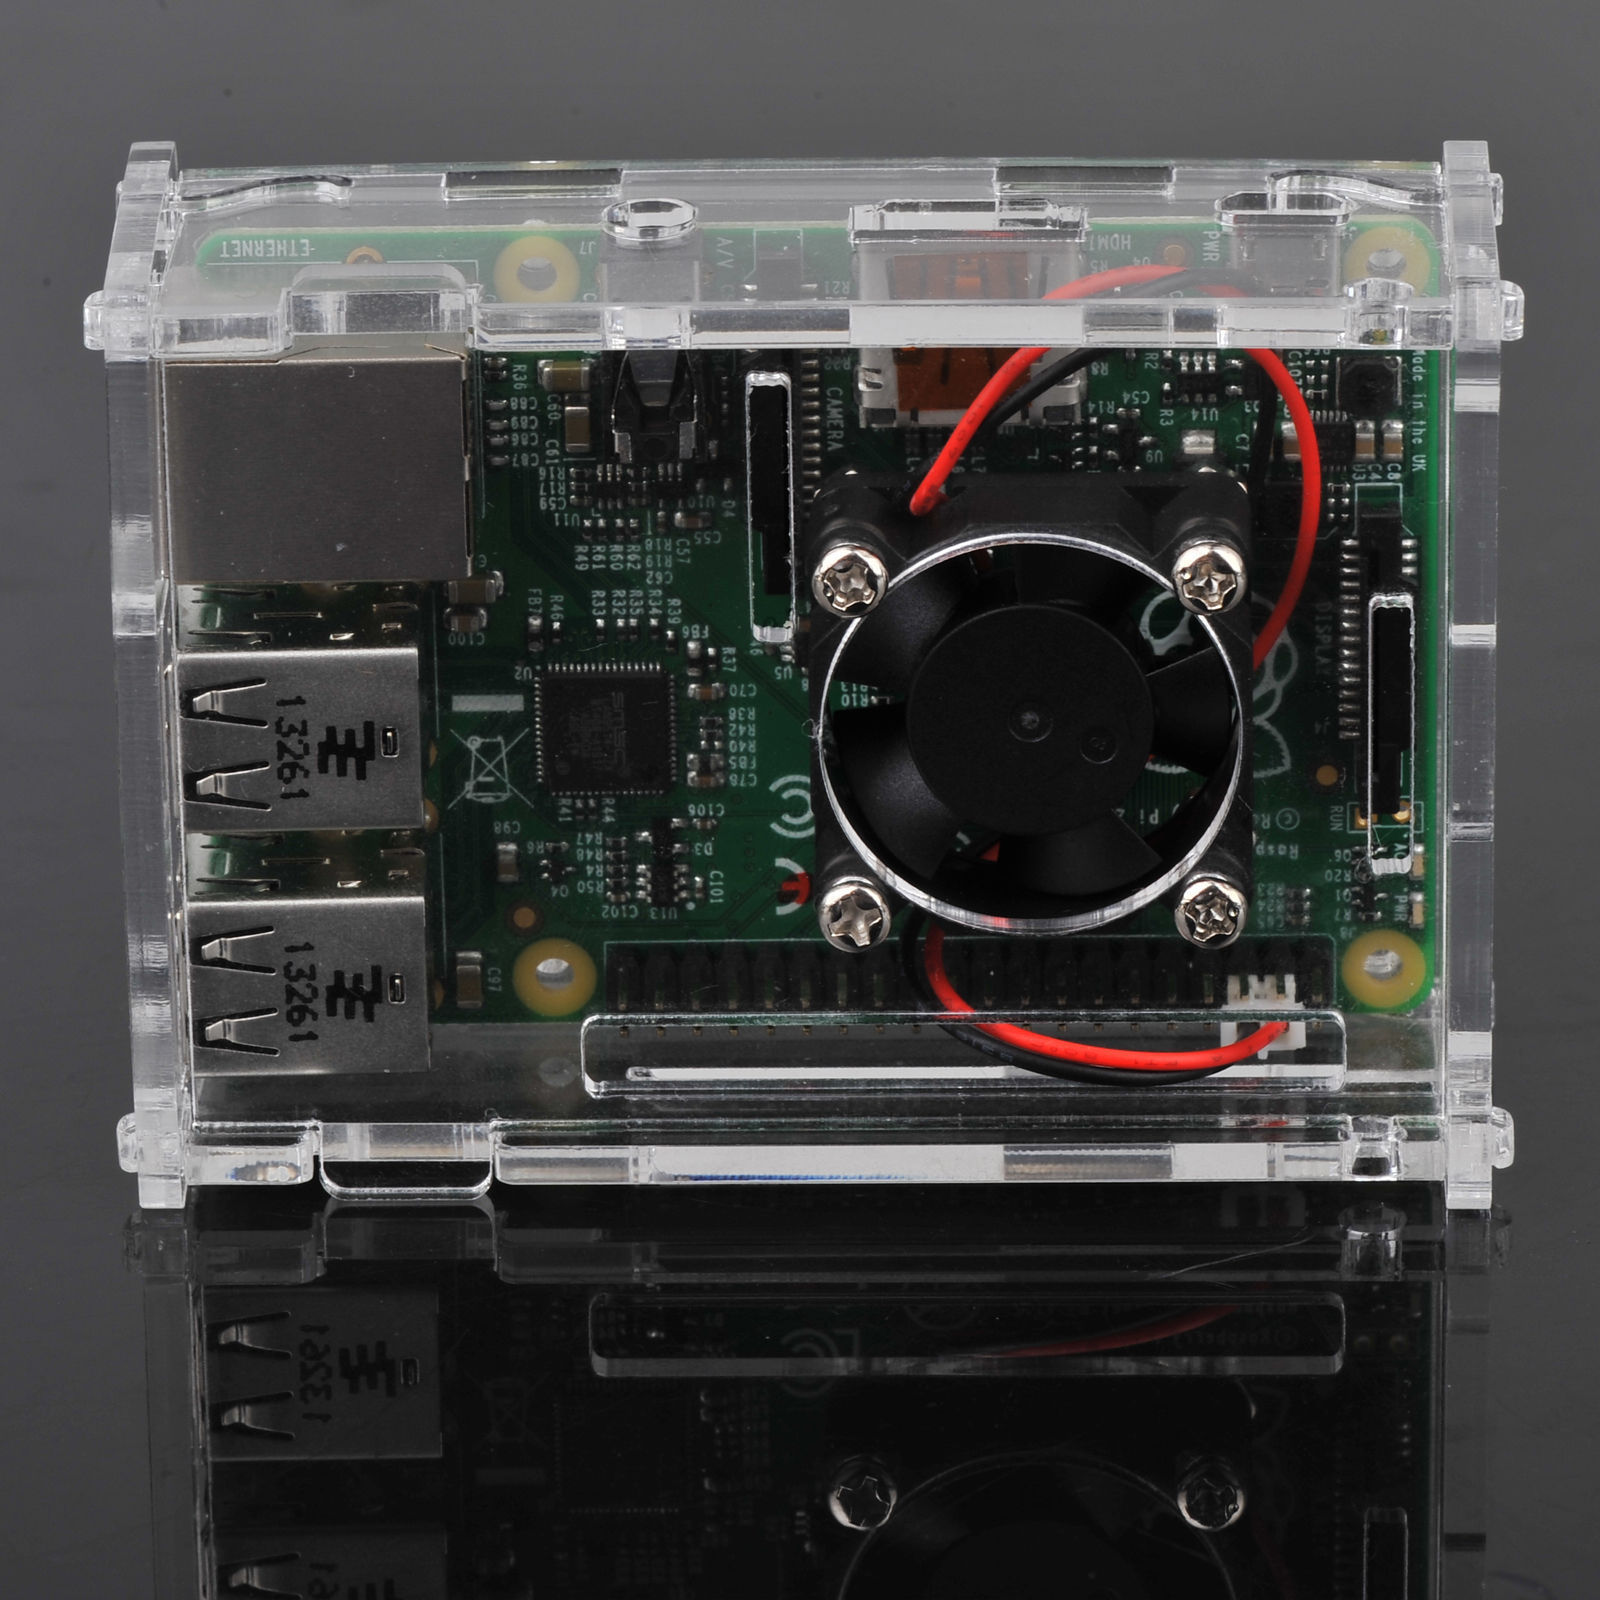 Clear-Case-Enclosure-Box-Cooling-Fan-Heatsink-For-Raspberry-Pi-B-2-3-Model-B thumbnail 21